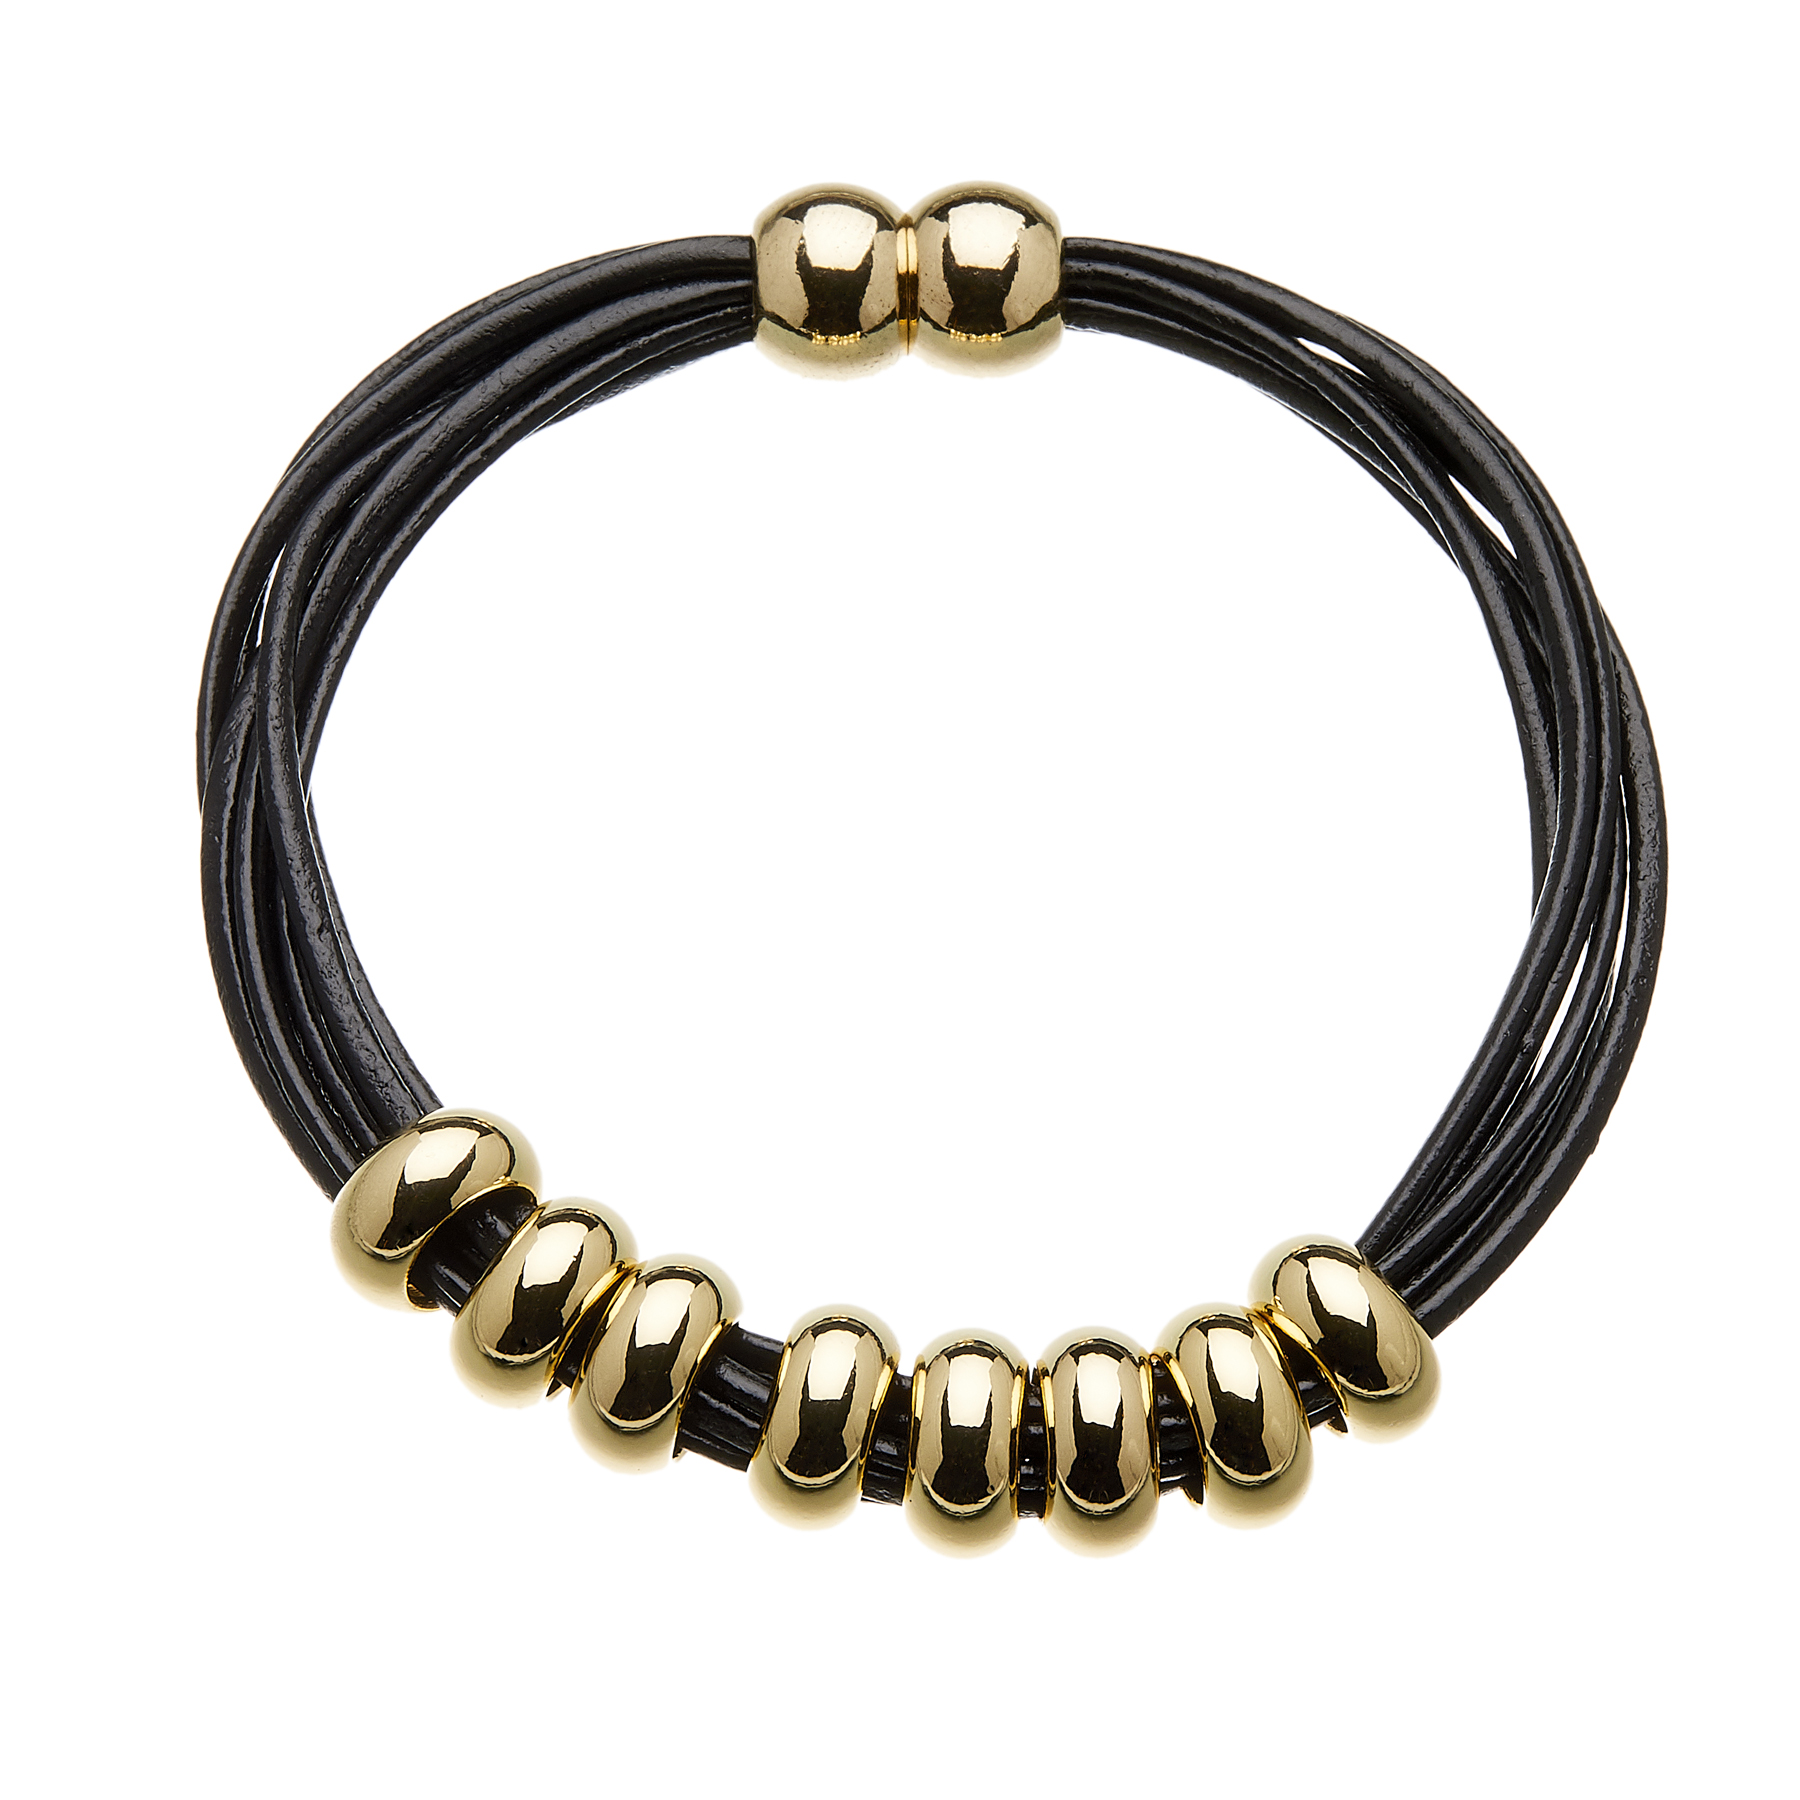 Bracelet with black leather strands and sliding gold beads - Rhoda B